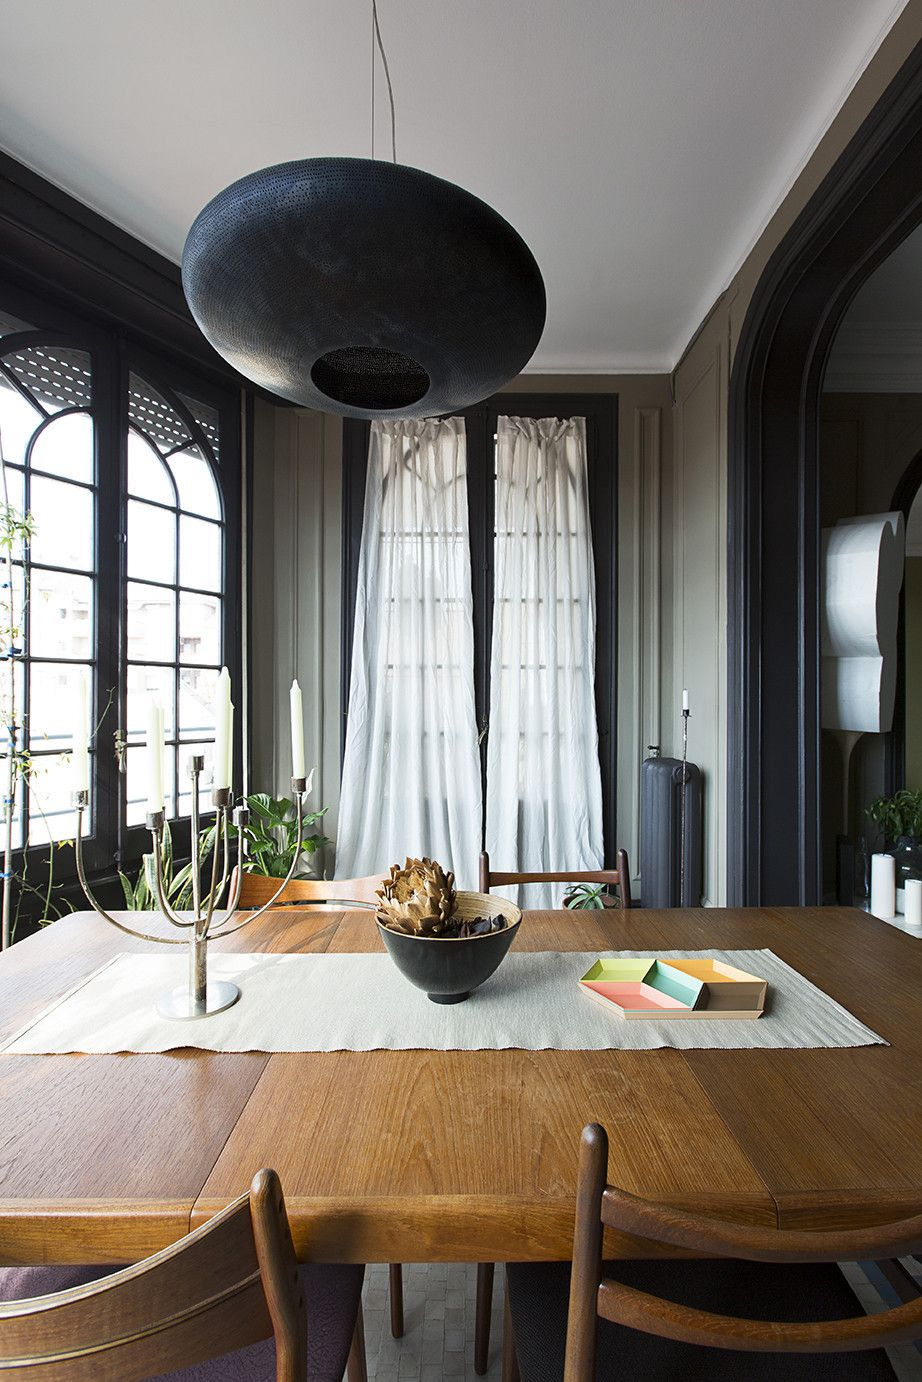 Ten tips a barcelona apartment where midcentury and antique collide